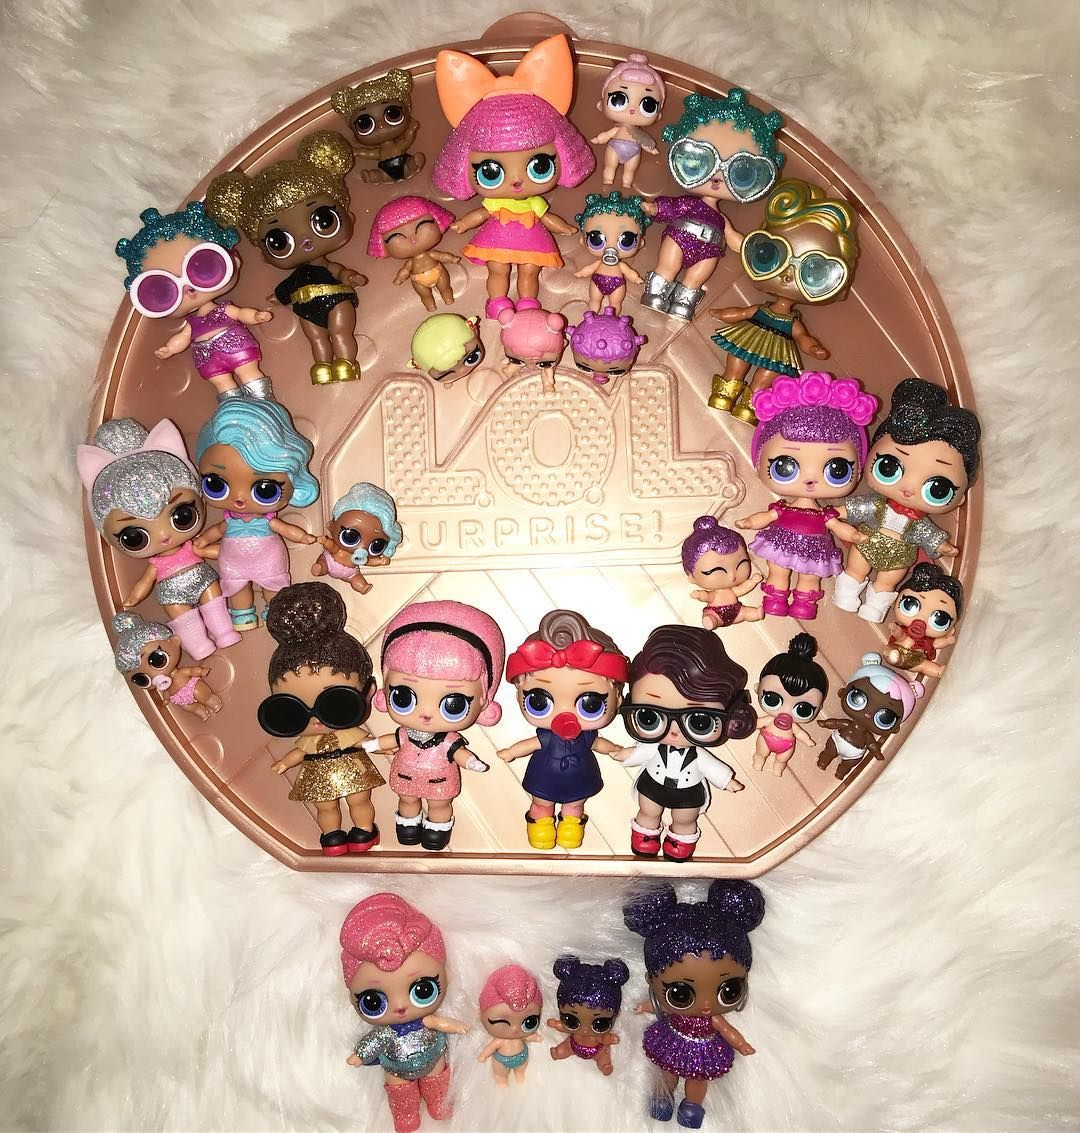 LOL Surprise Lil crystal queen dolls LiL Sis SERIES 2 w// bag necklace collection